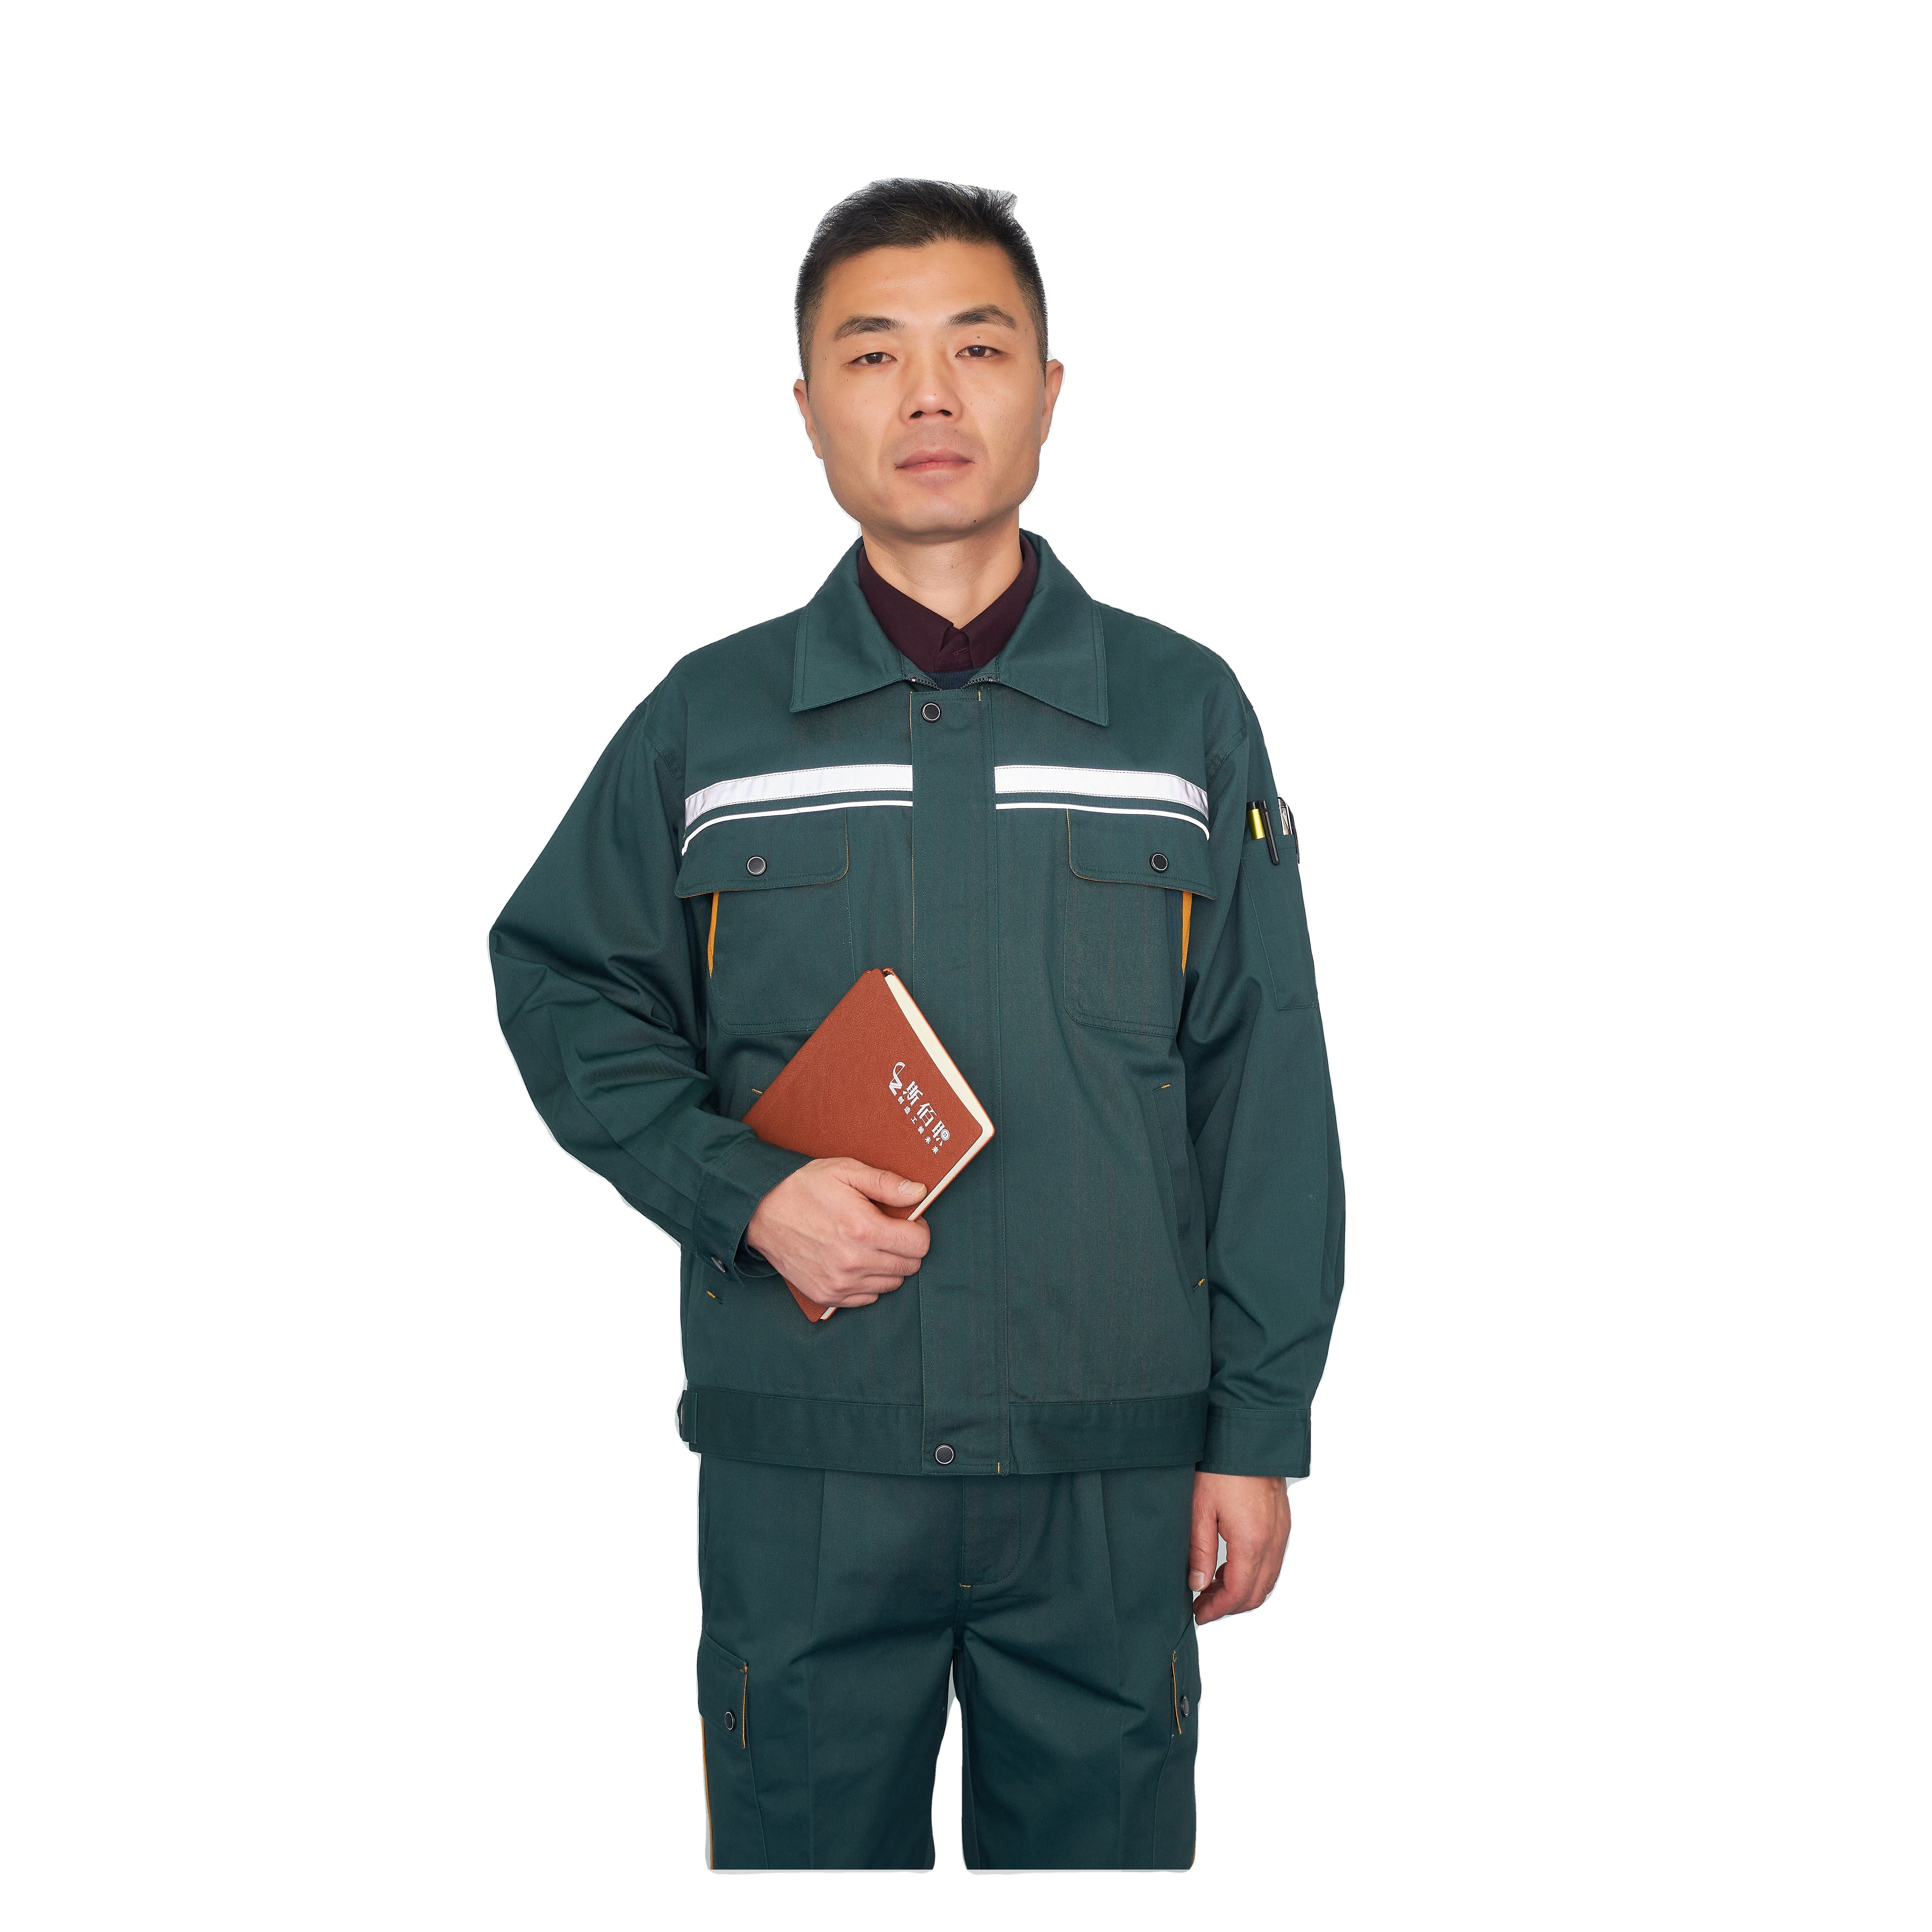 wholesal unisex auto repair workwear construction uniforms work clothes mechanic made in China overalls with logo